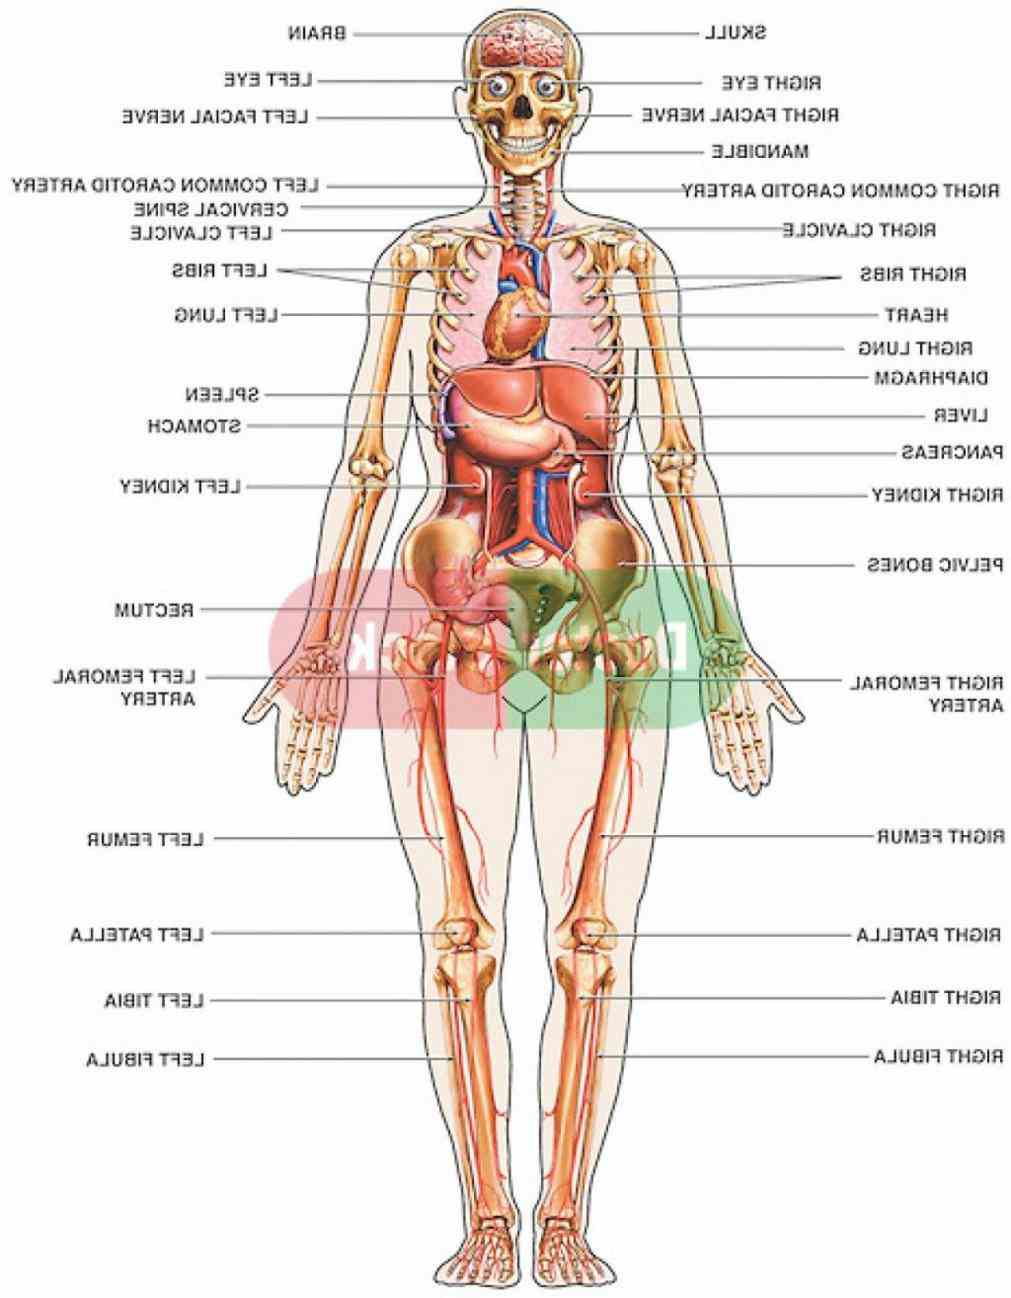 flow exits body via vagina innerbodycom Female Human Body Systems Anatomy is a free virtual human anatomy website with